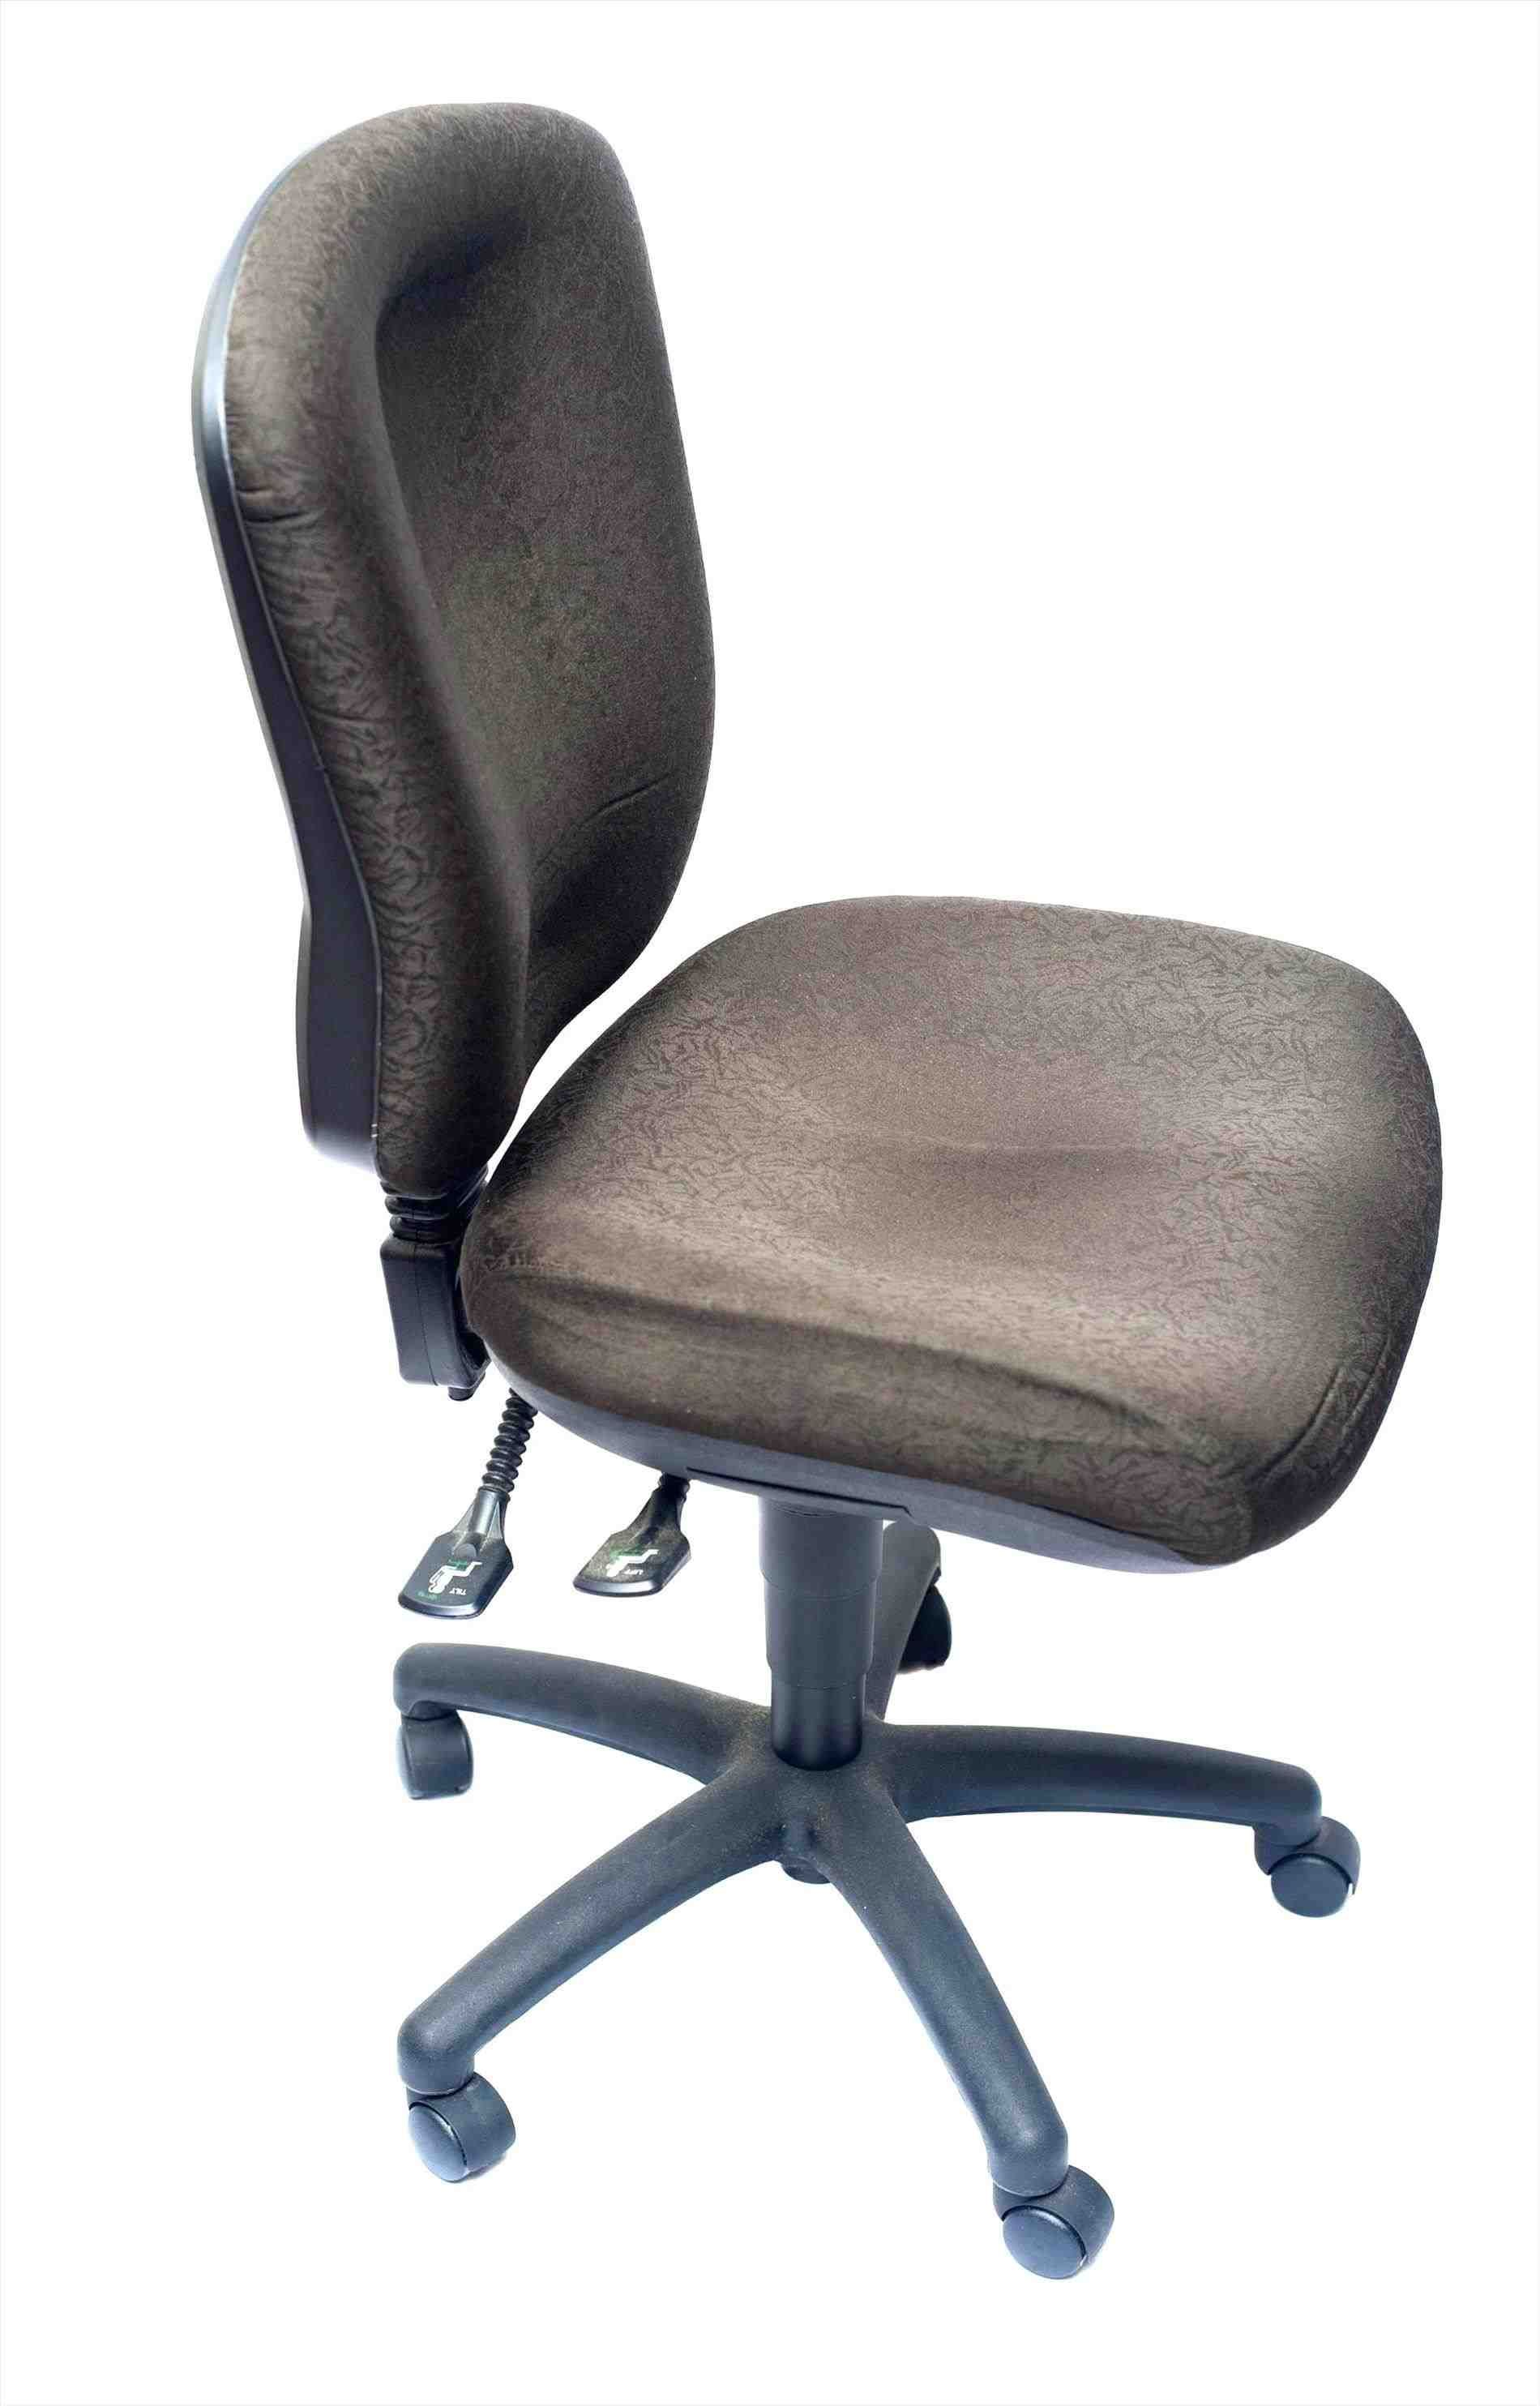 Cheap Office Chairs On Ebay | Office chair, Small desk chairs